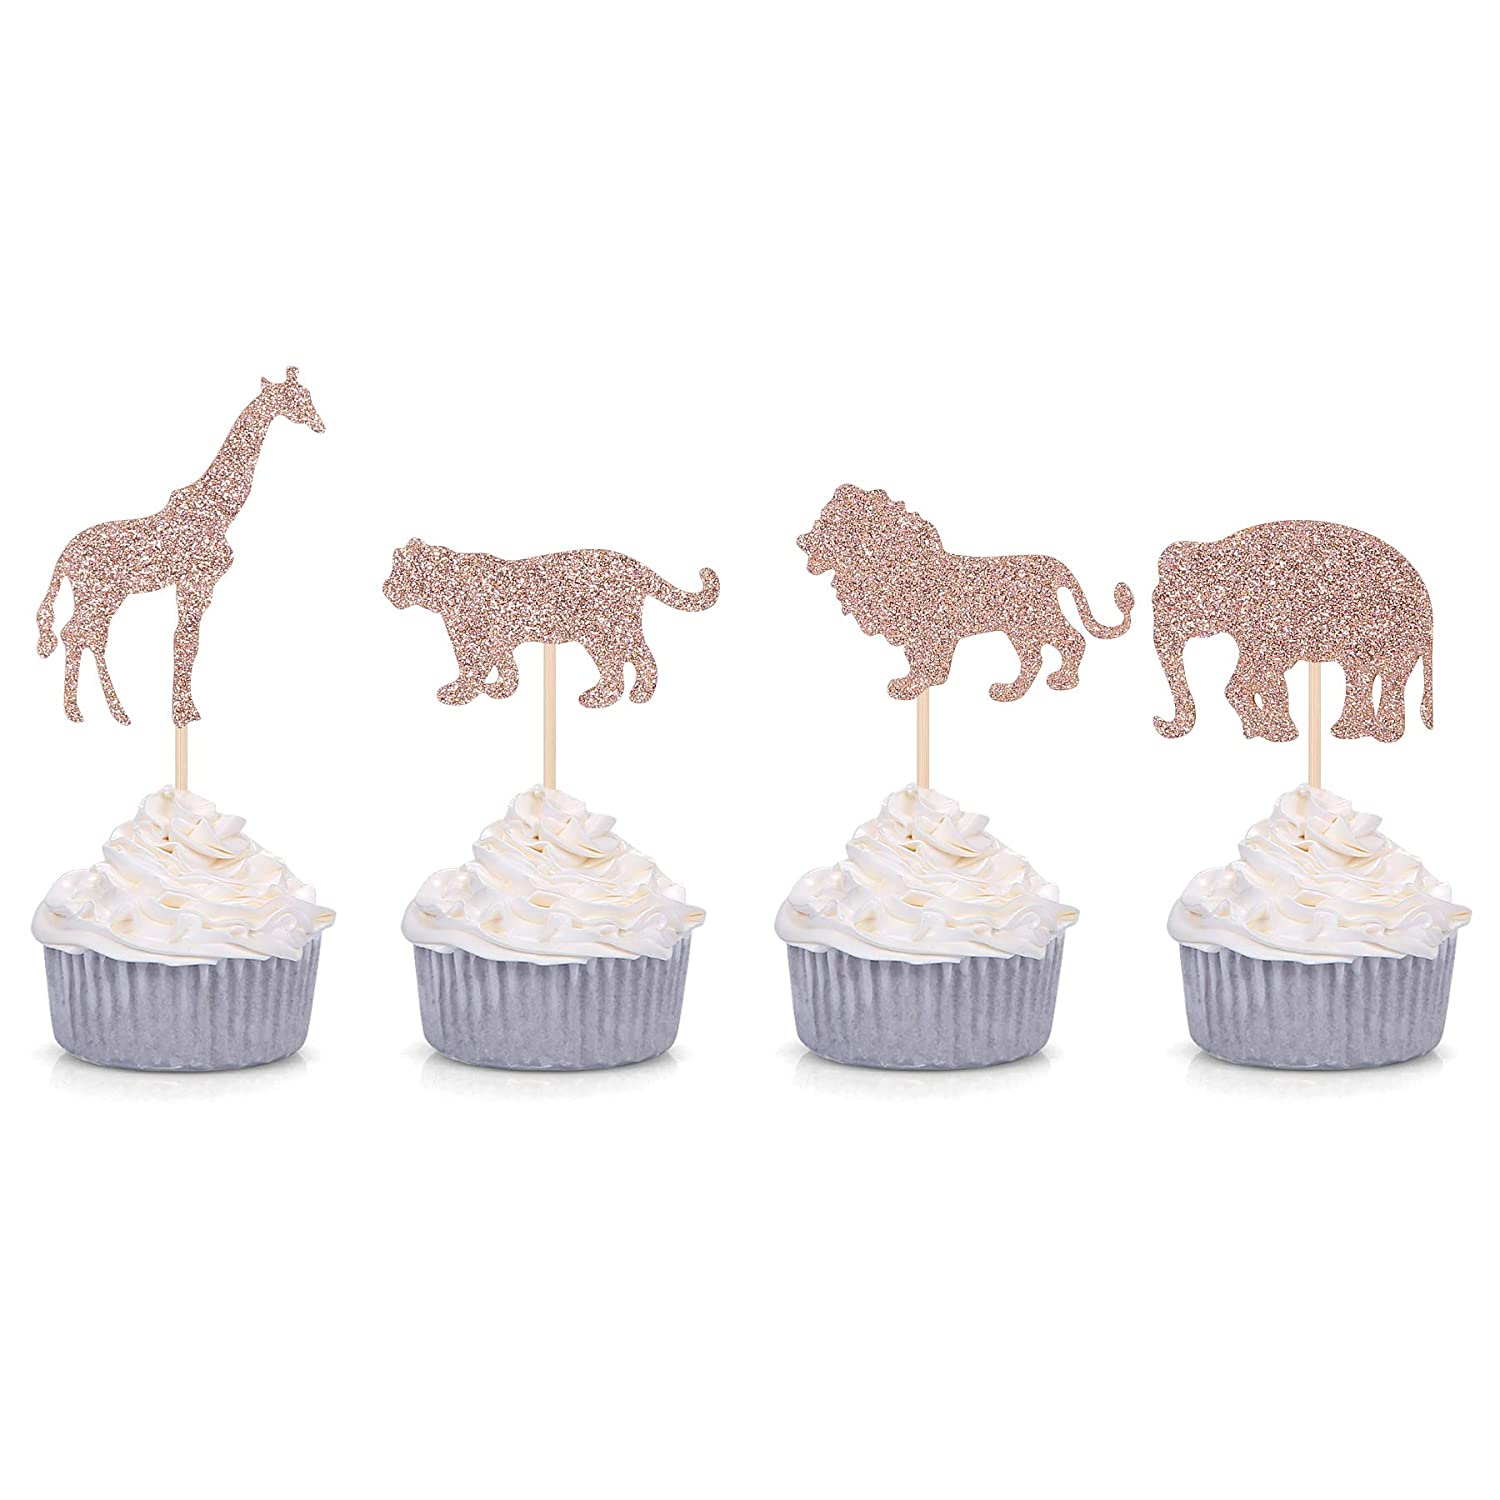 24 Counts Rose Gold Glitter Jungle Safari Animal Cupcake Toppers Elephant Giraffe Lion Tiger for Baby Shower Birthday Party Decorations